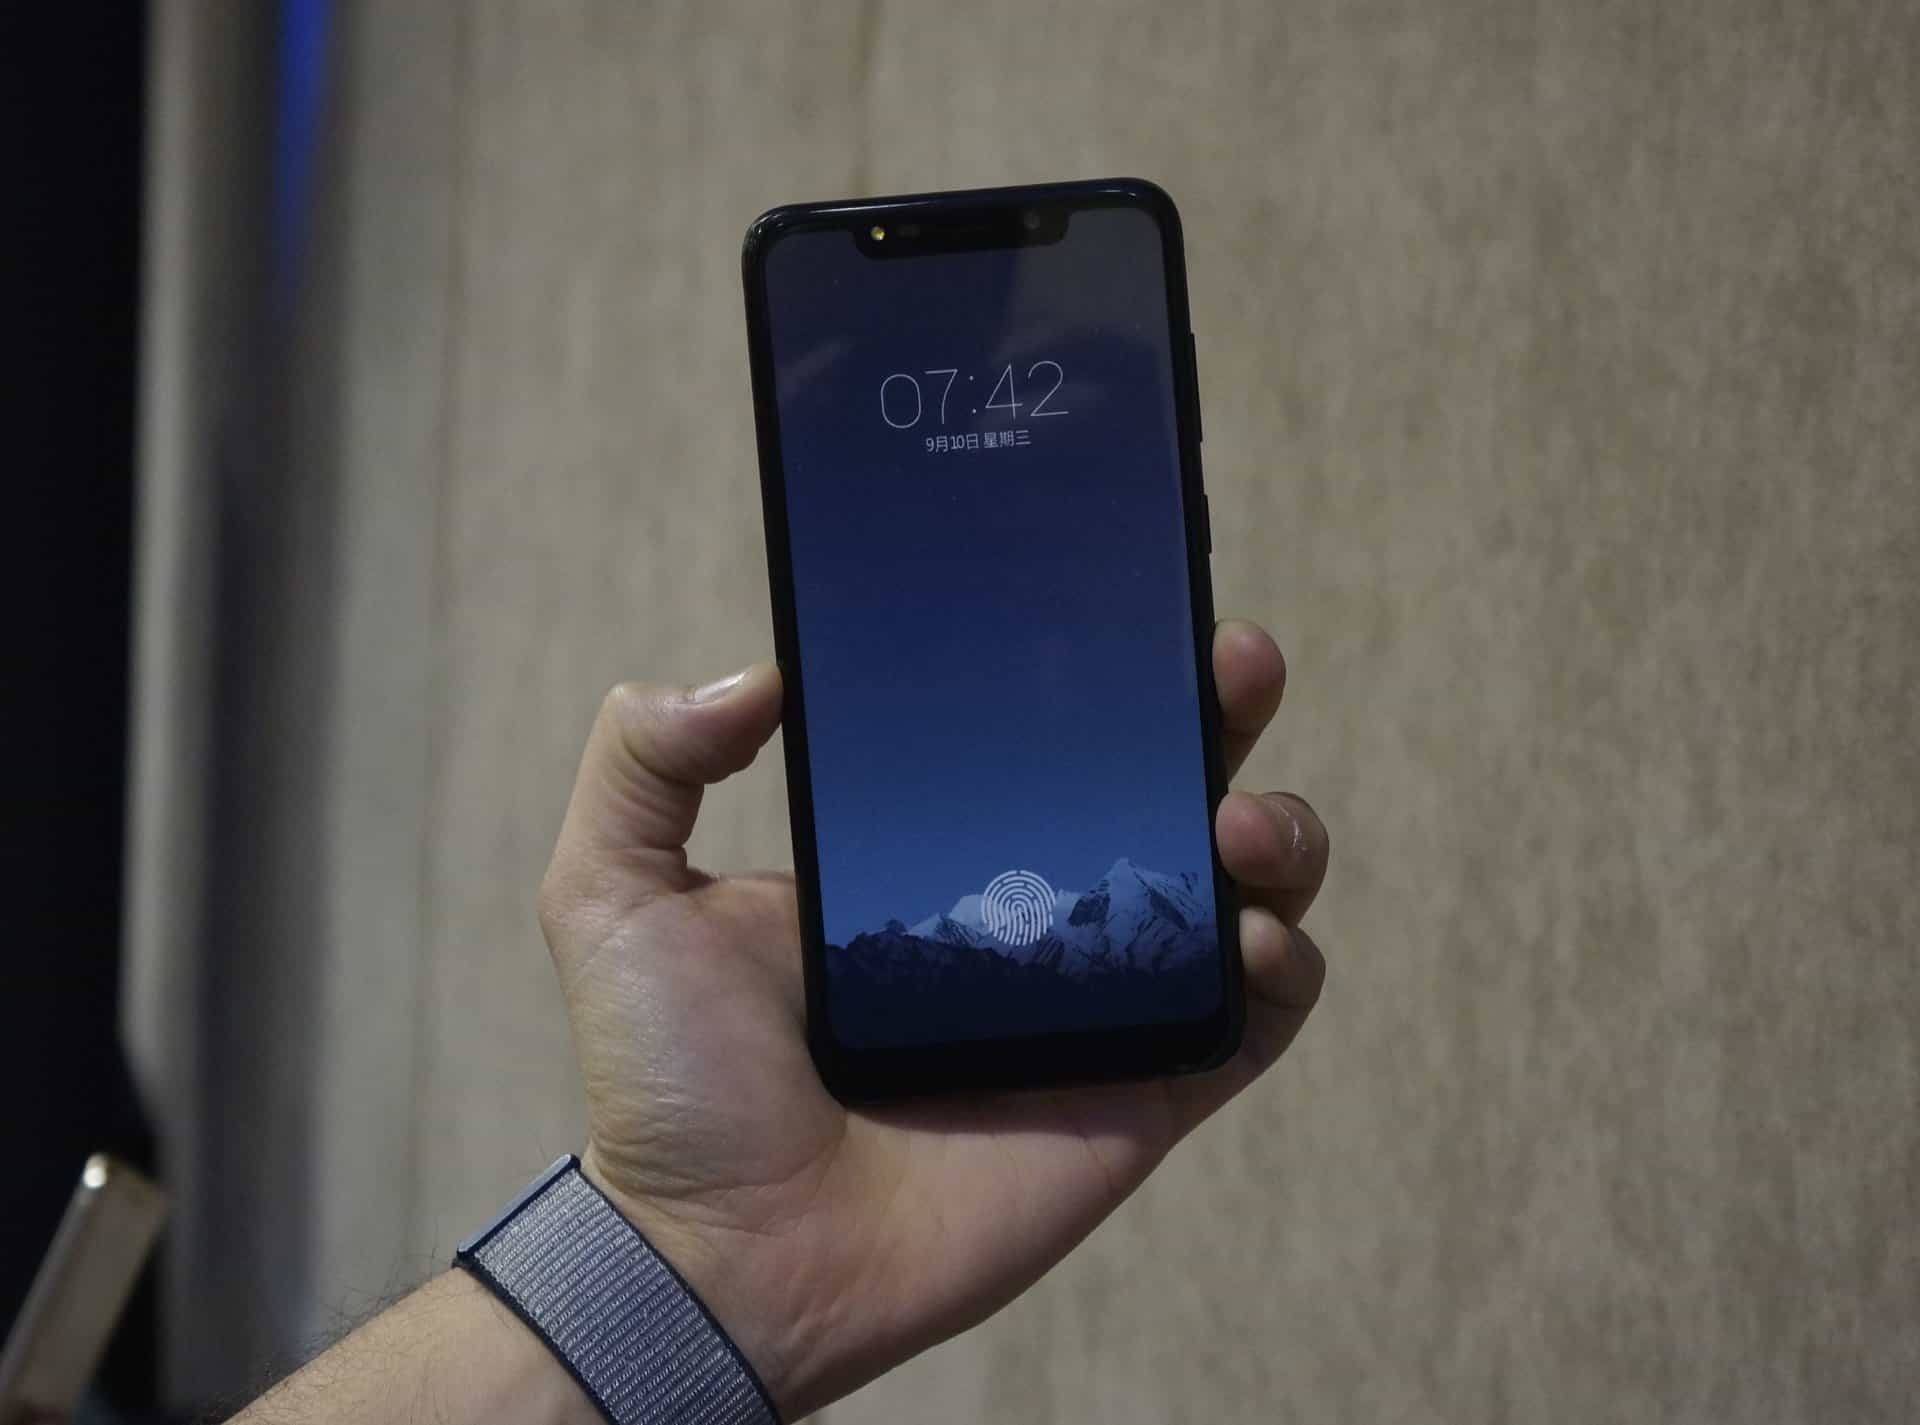 The Notch Paradox - What's the Story behind it? - 9